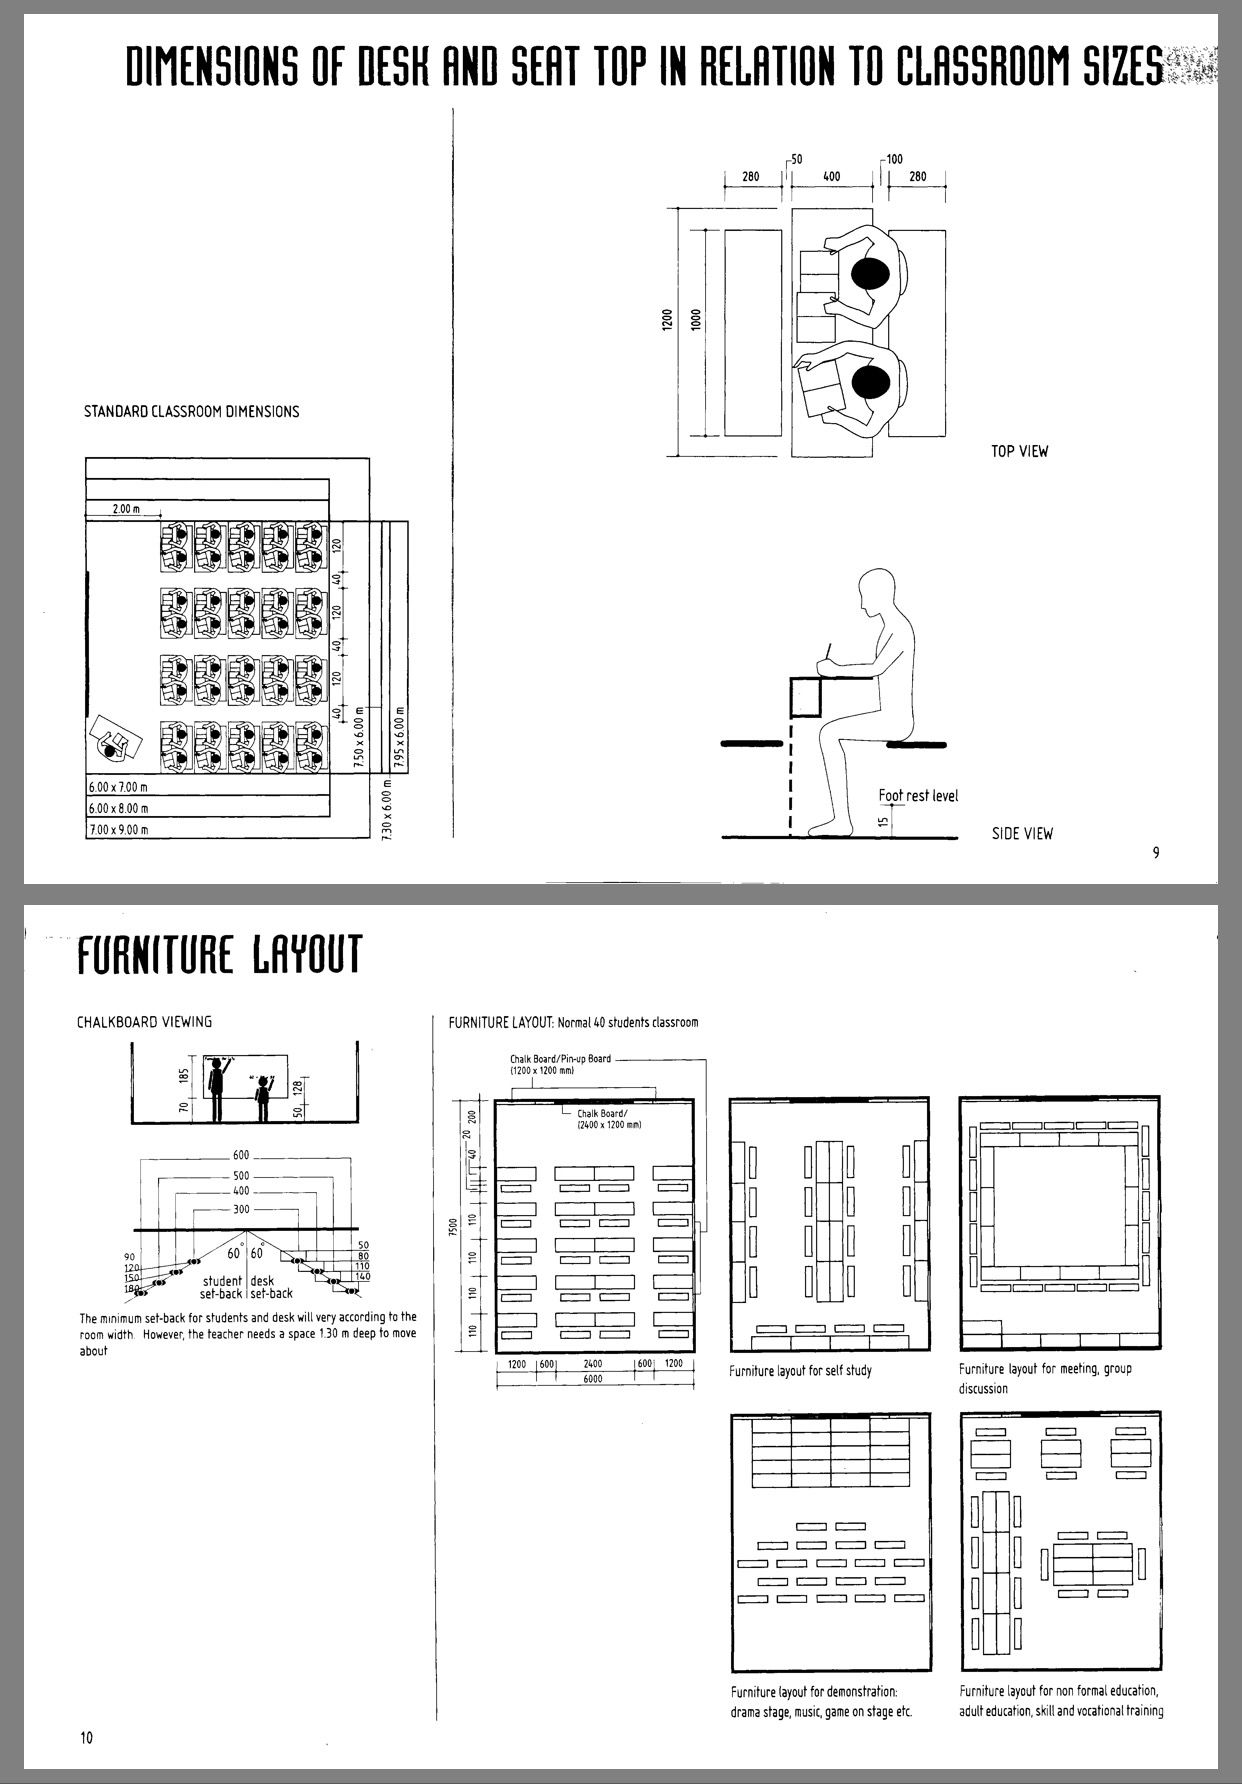 School Classroom Design Standards : Classrooms dimensions high school project pinterest